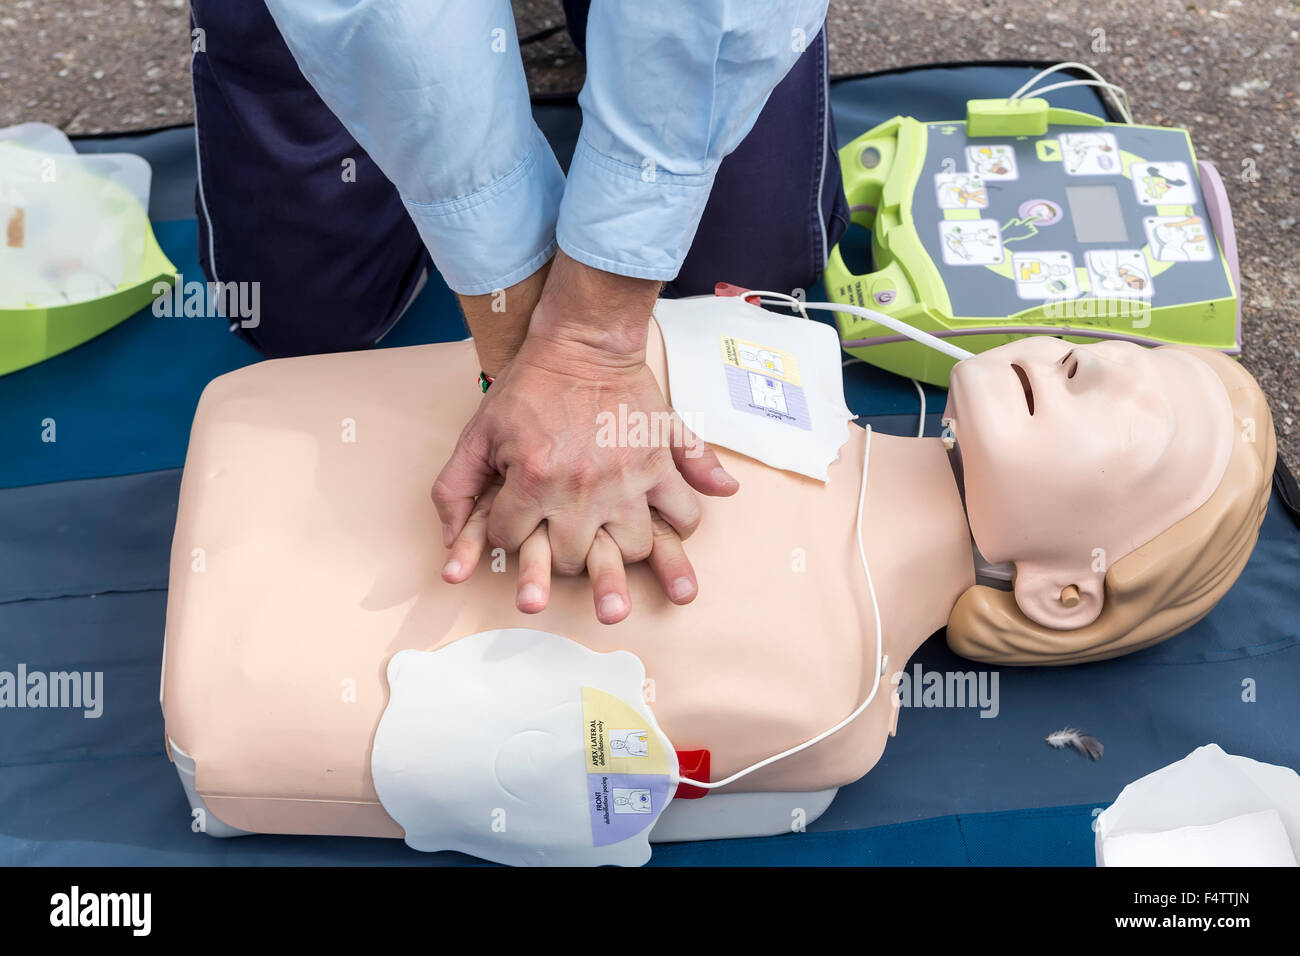 Thessaloniki greece oktober16 2015 the instructor showing cpr thessaloniki greece oktober16 2015 the instructor showing cpr on training doll free first aid cpr lessons given in the cent xflitez Gallery